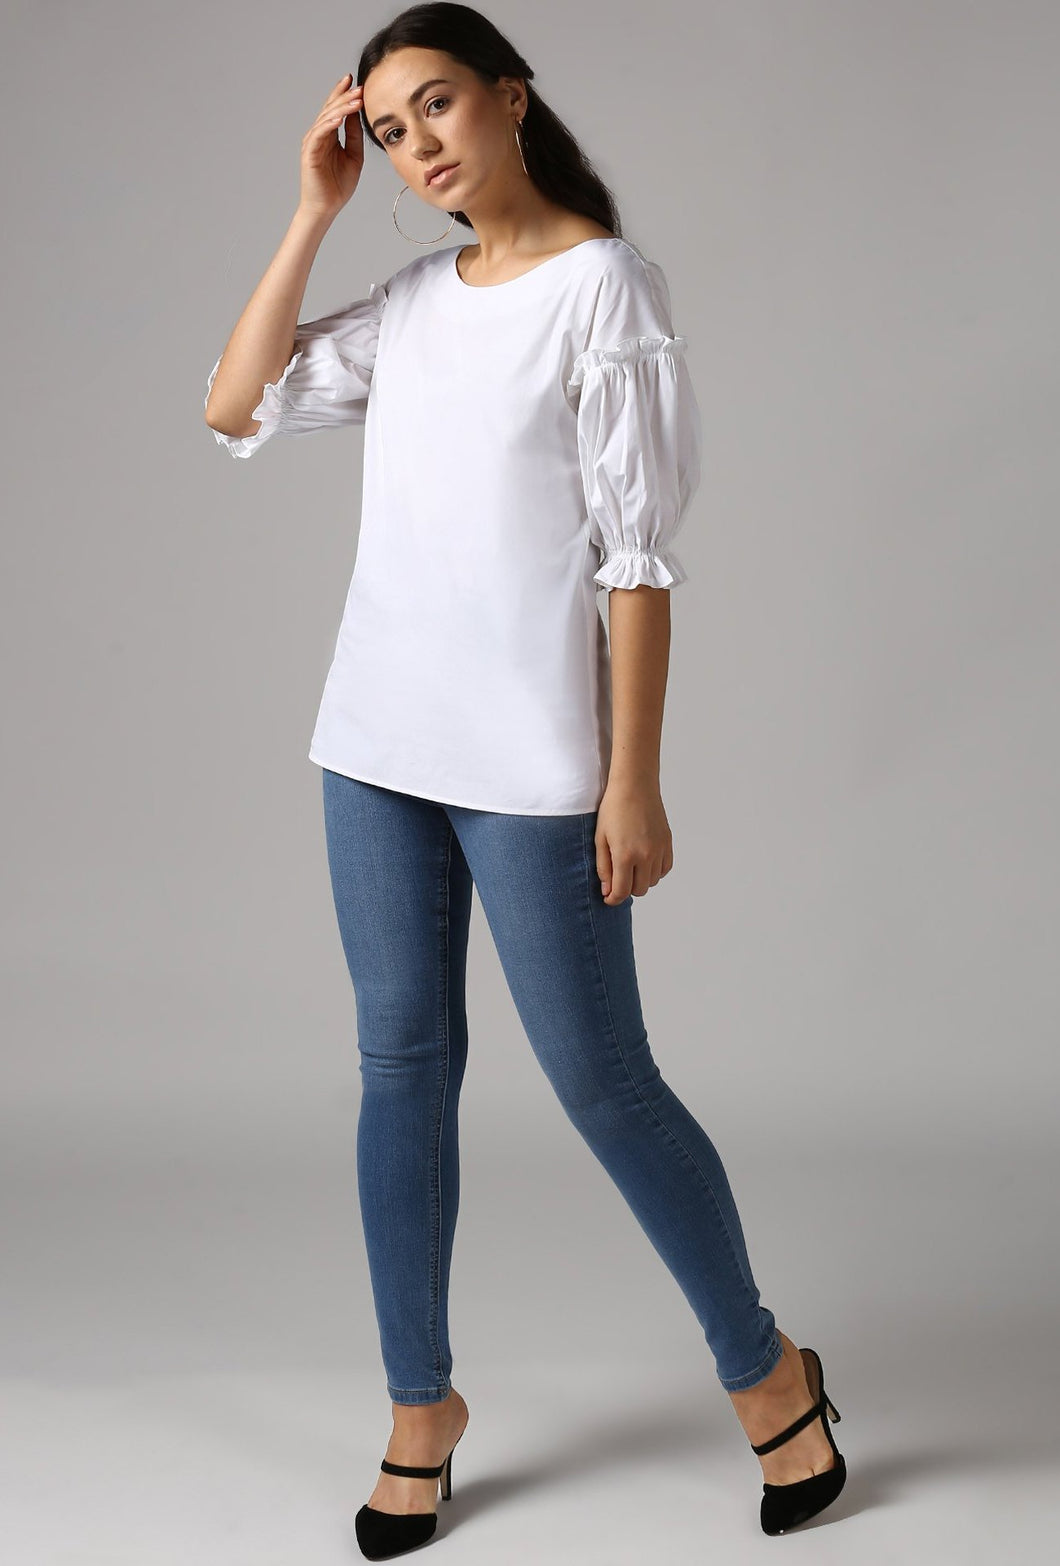 Ivory Boat Neck Gathered Frill Sleeve Top Style